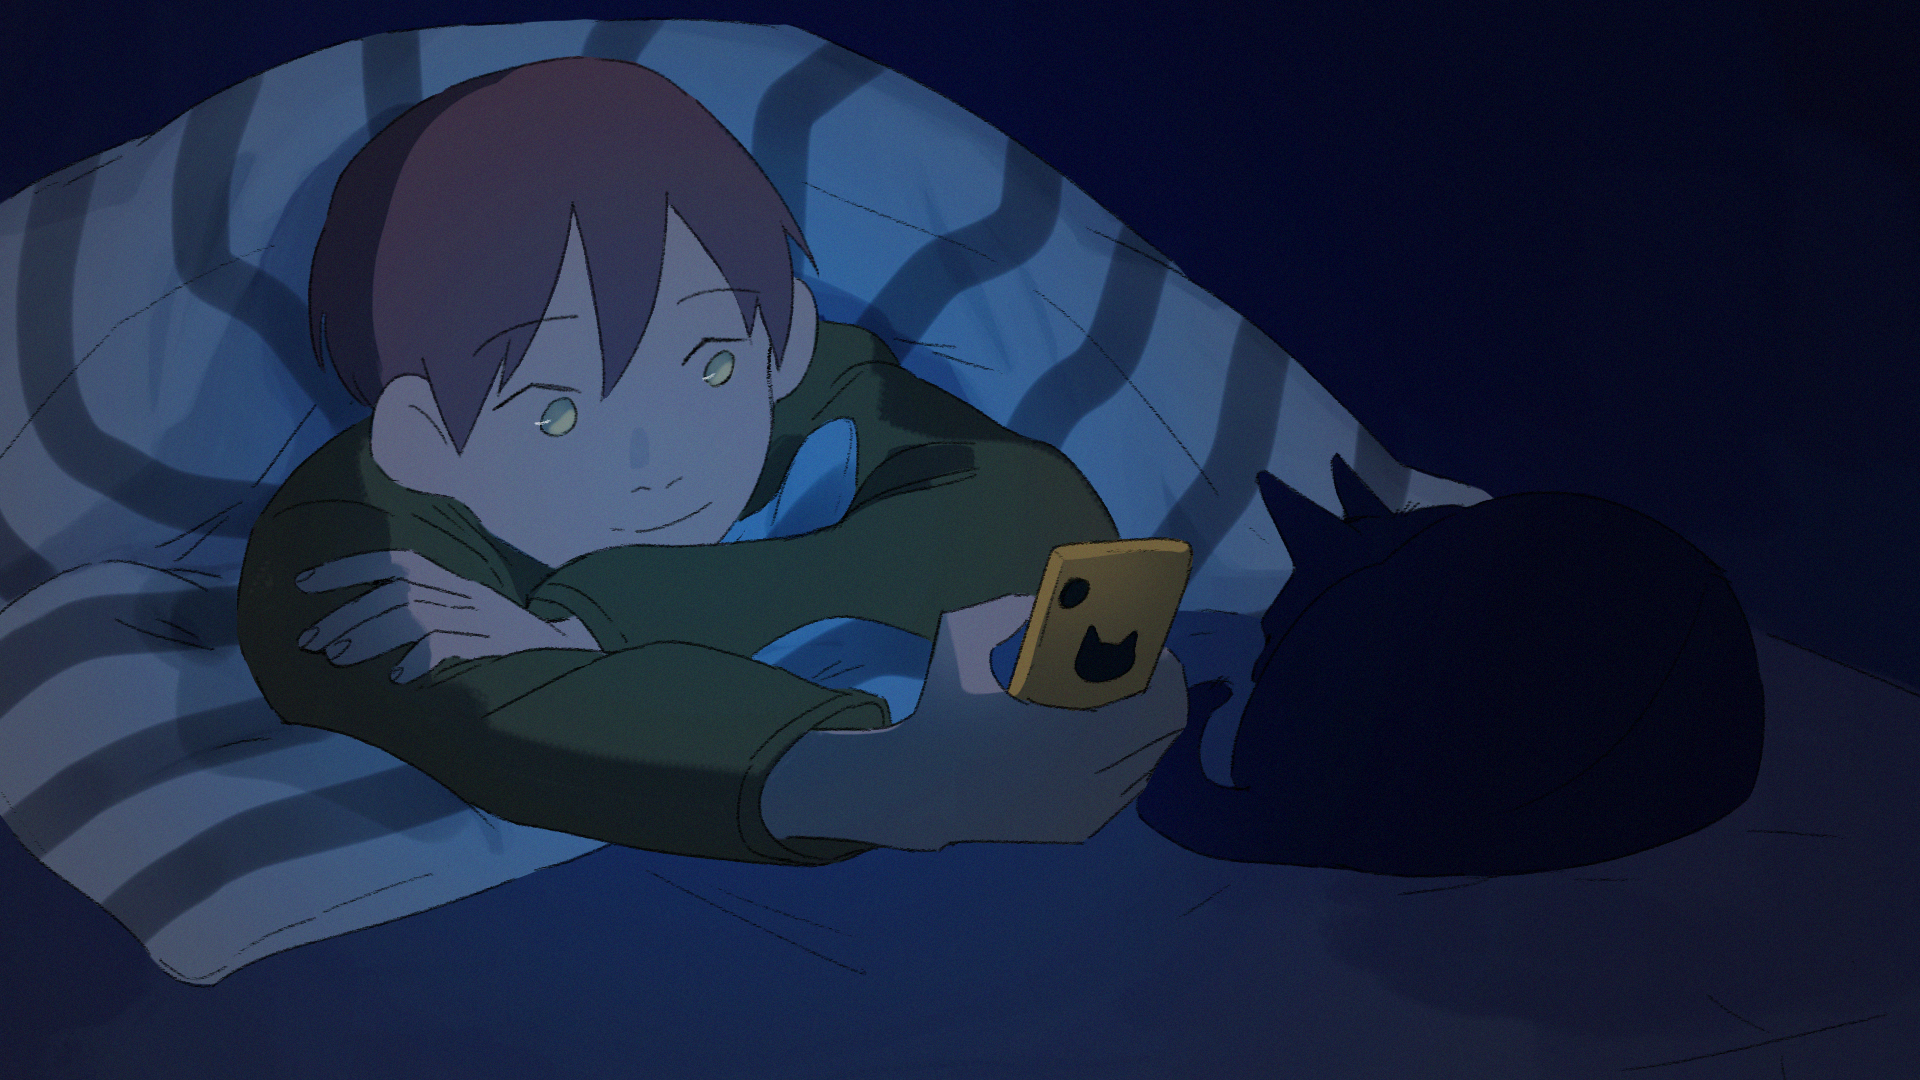 Drawing of character in bed with phone.